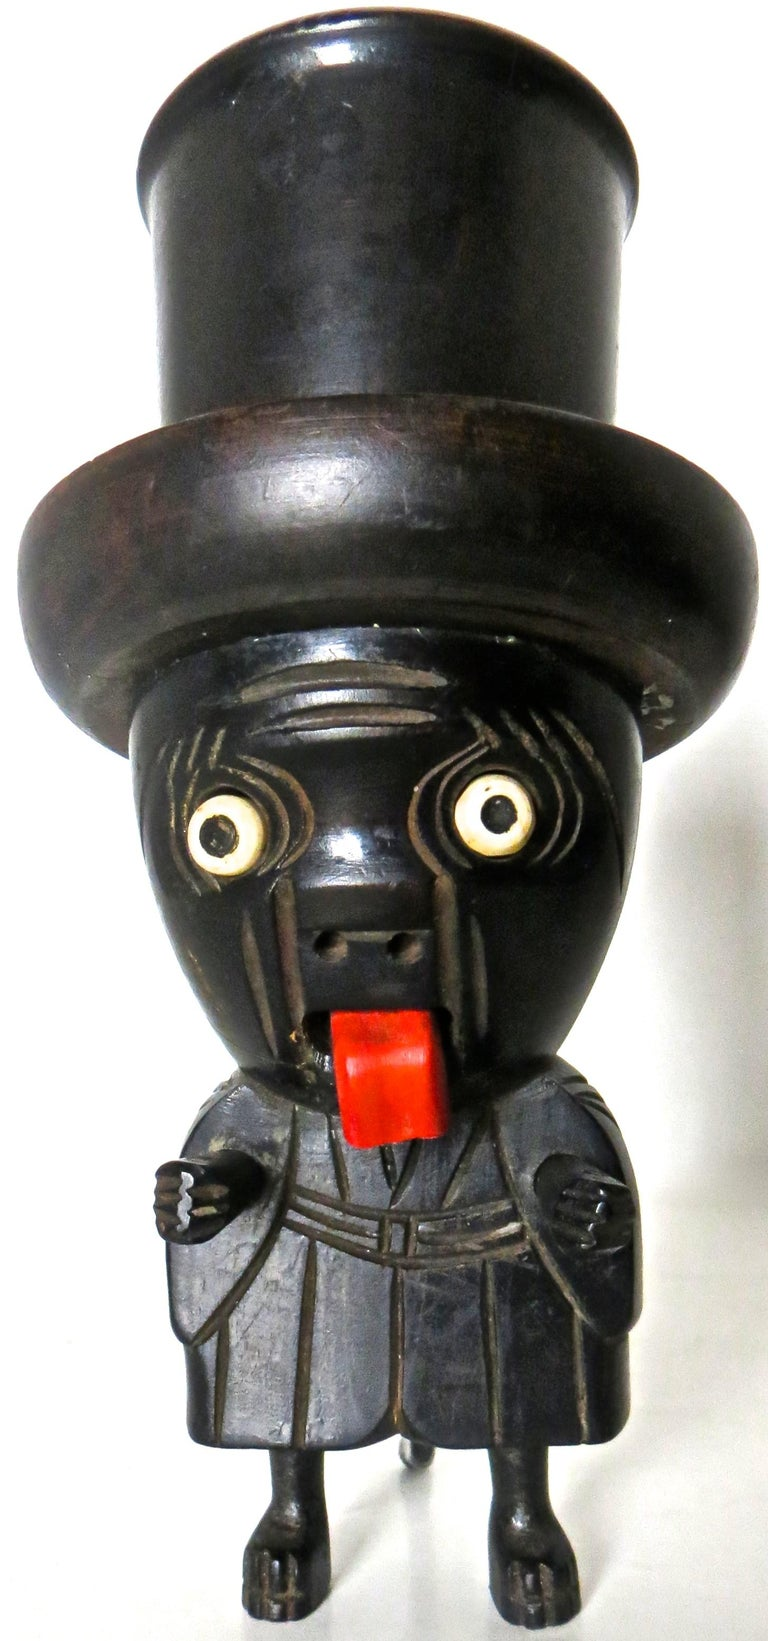 Kobe Toys are very mysterious and not much is known about them. They were created and hand made during the Meiji period in Japan, which covered the years 1868 until 1912. These particular (6) figural toys I date to around 1890 to 1900, although